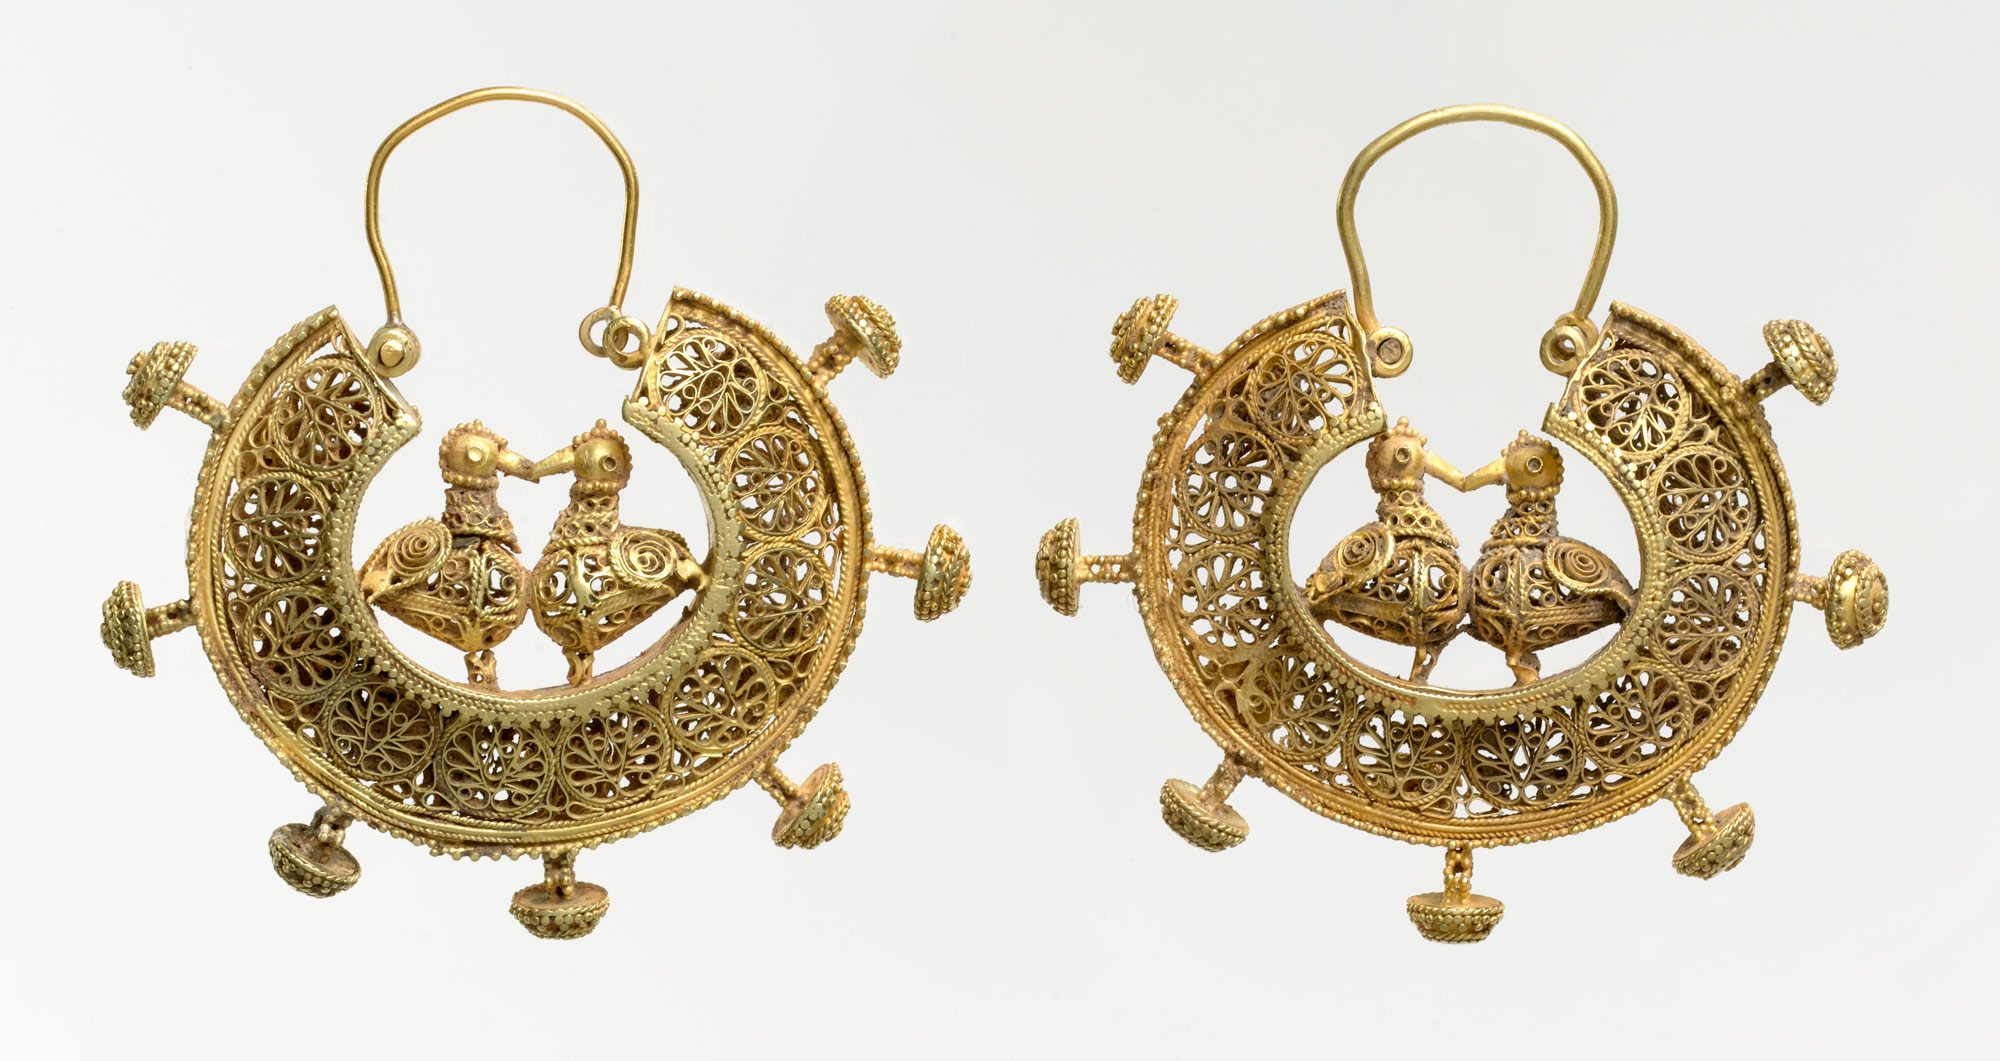 accessories shop work arora carma products plated earrings gold varnika pid carmaonline by cut